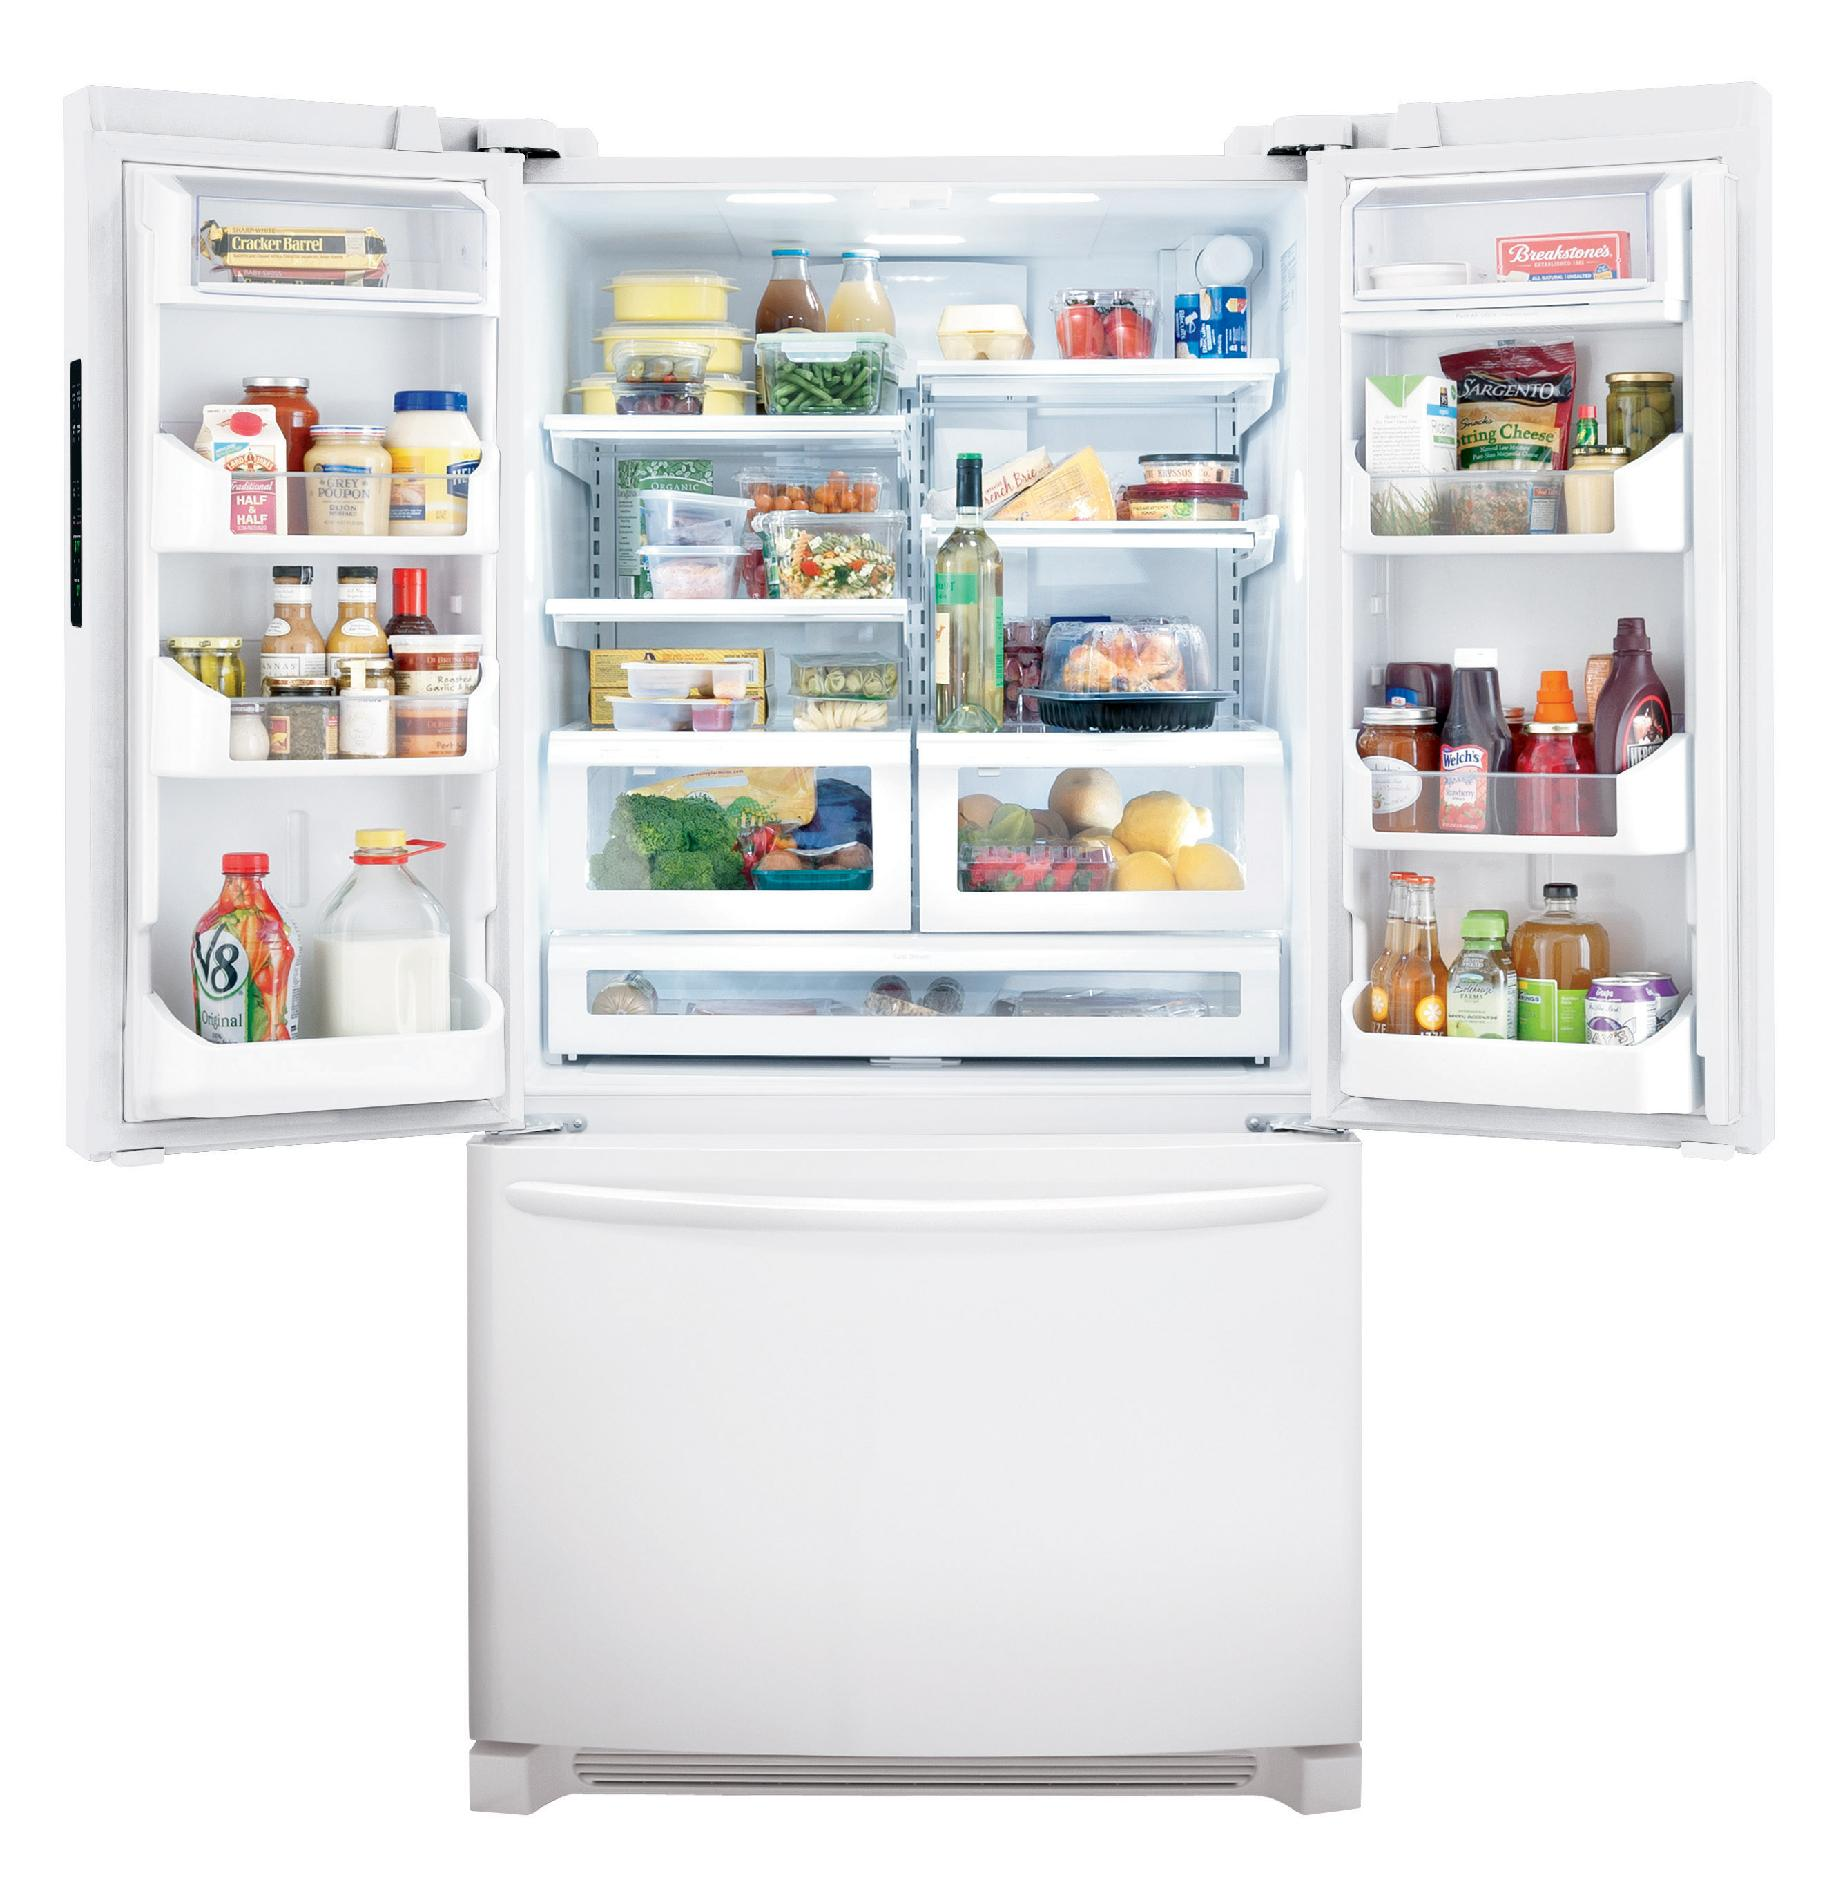 Frigidaire Gallery Gallery 27.8 cu. ft. French Door Refrigerator - Pearl White